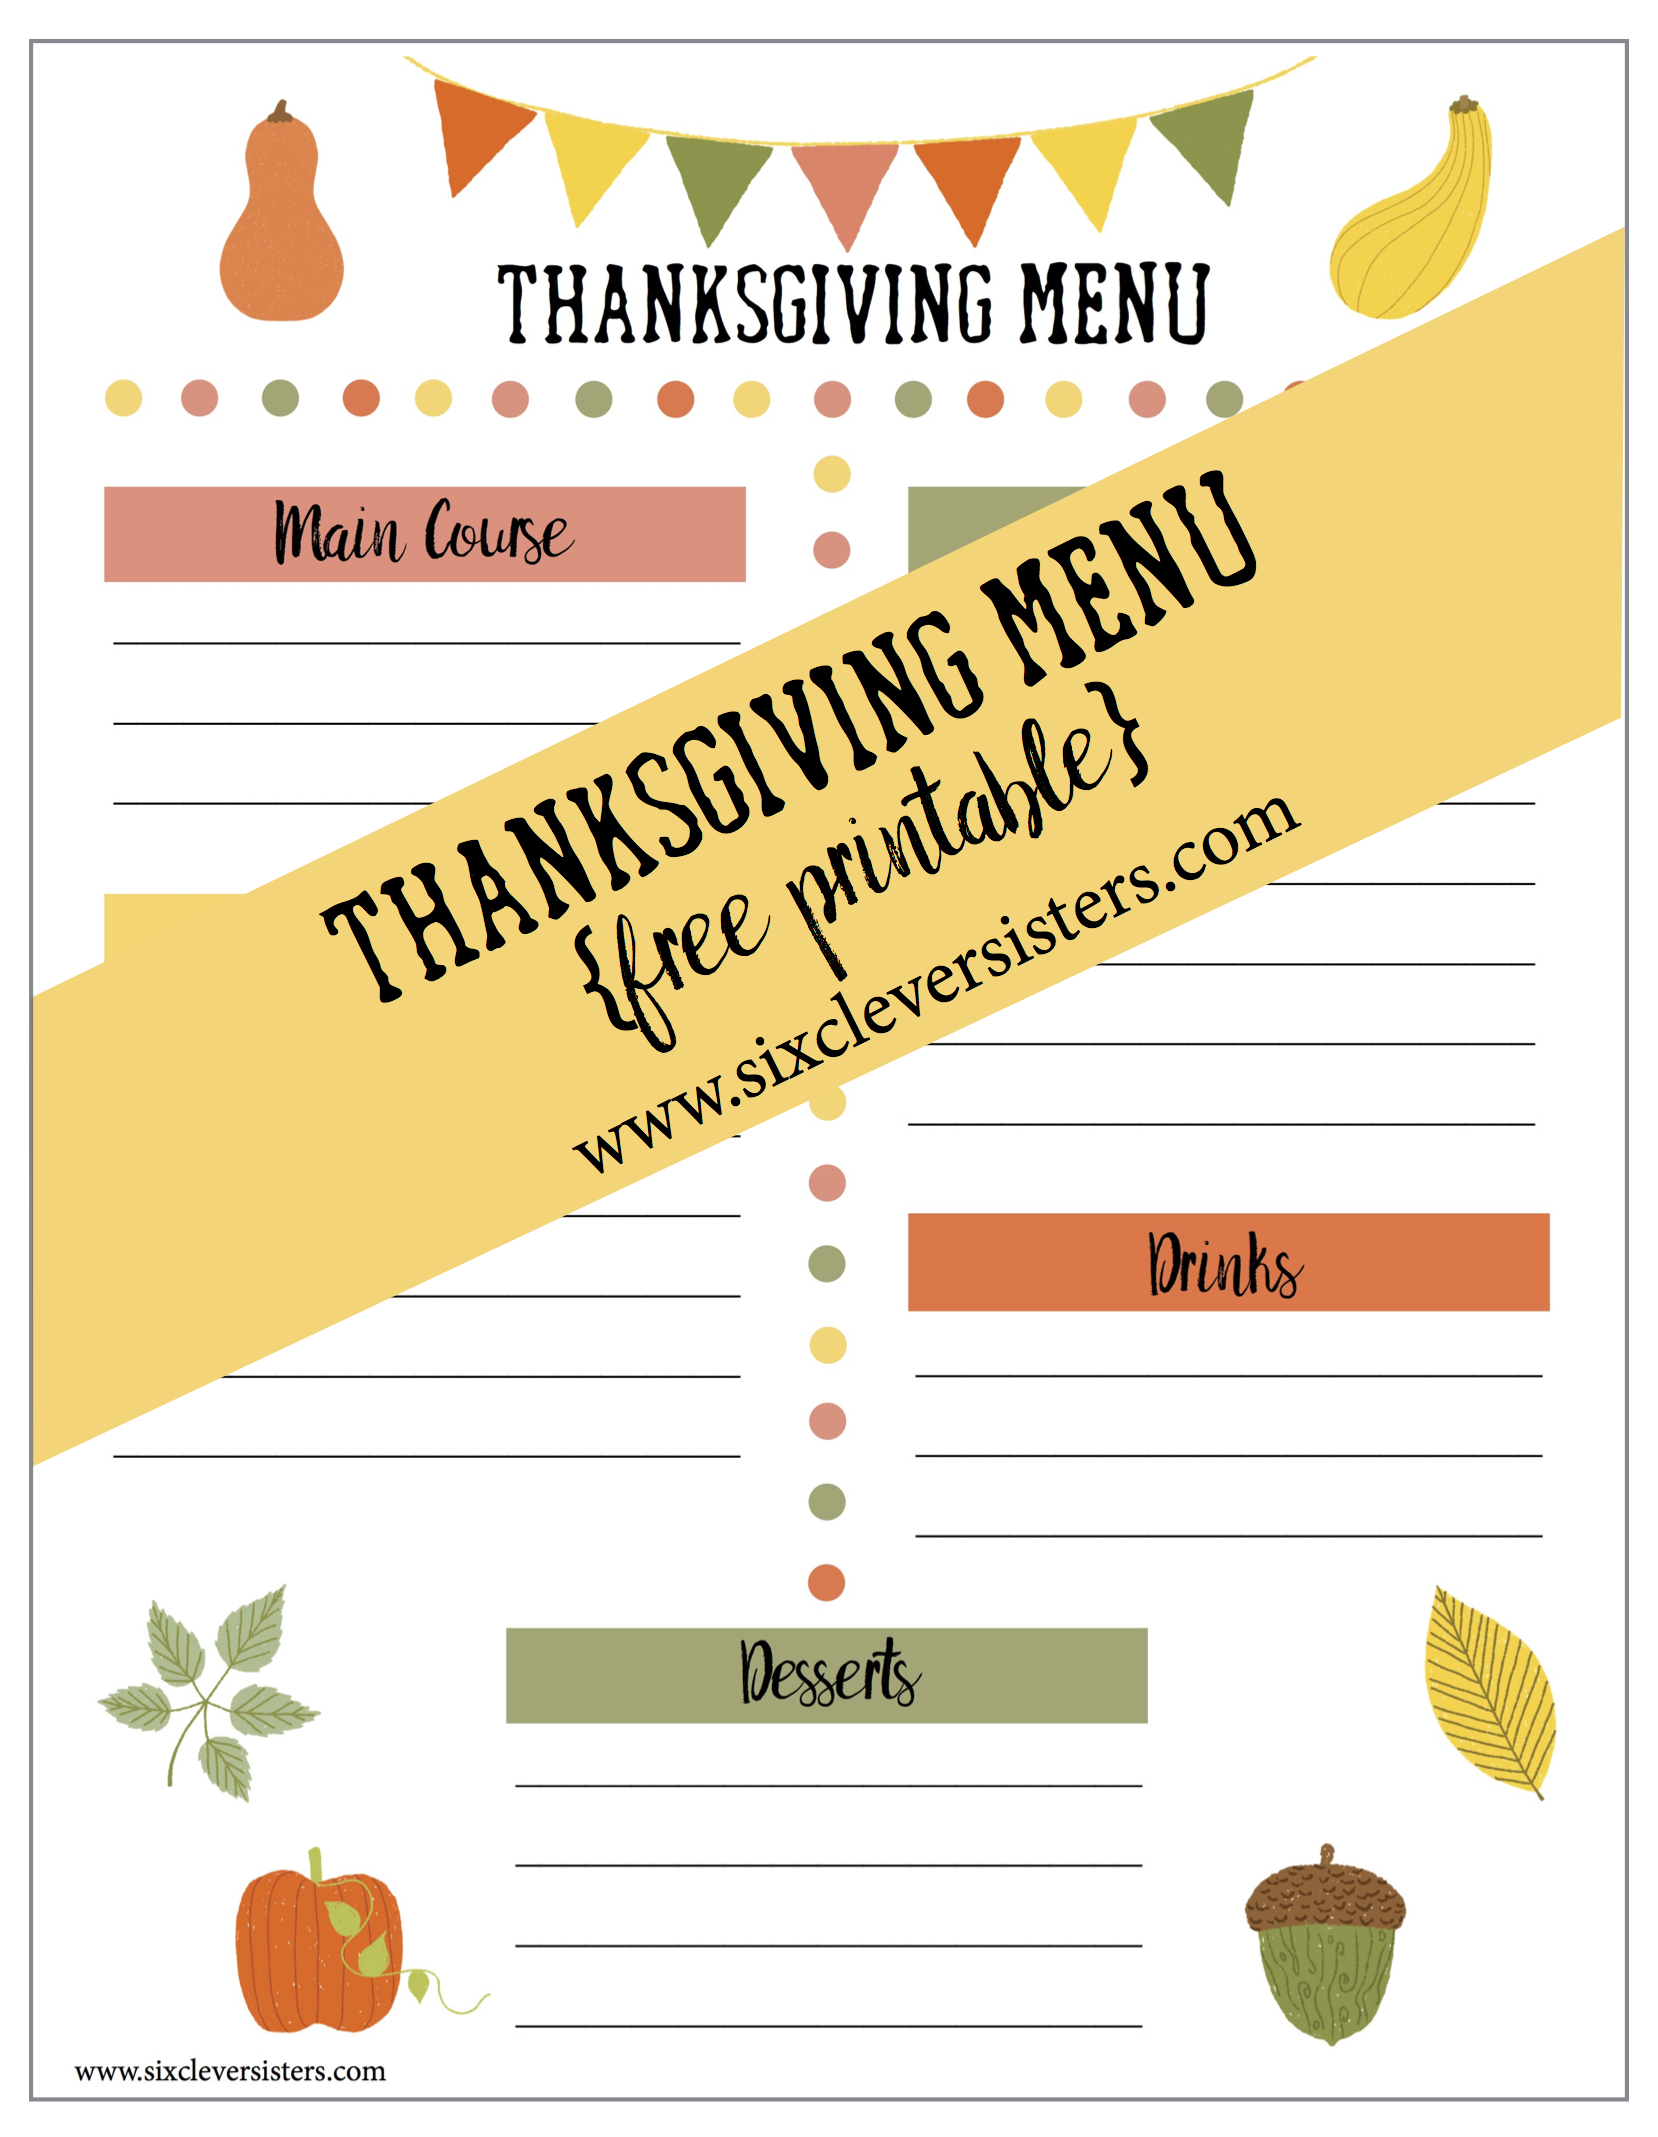 Printable Thanksgiving Menu And Shopping List Six Clever Sisters